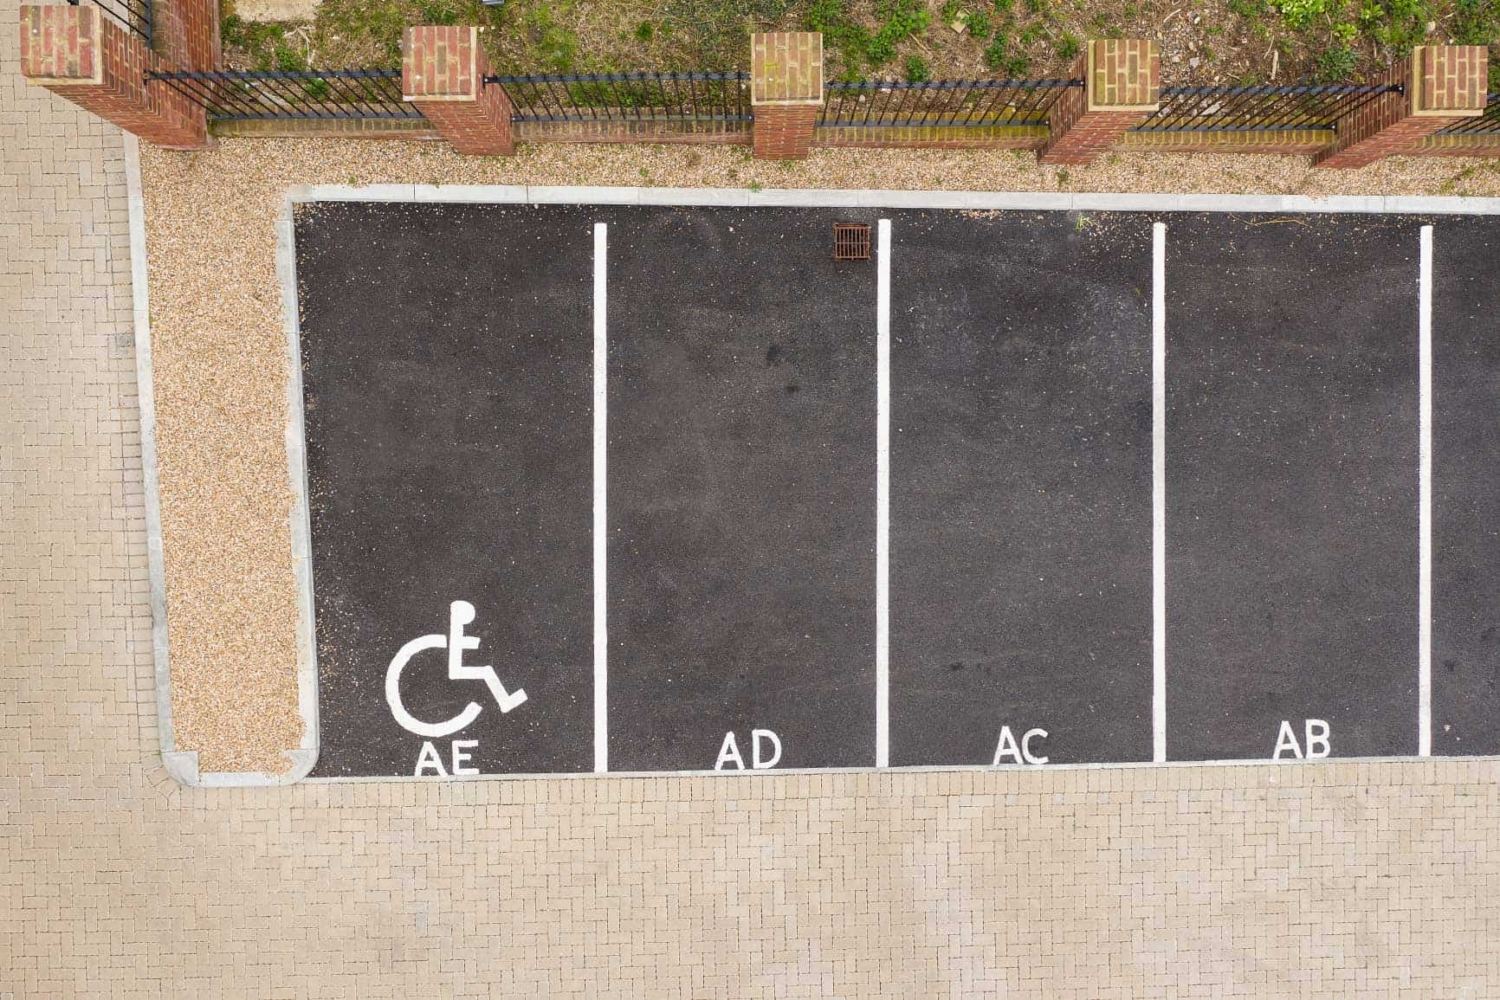 Car Park layout birdseye view